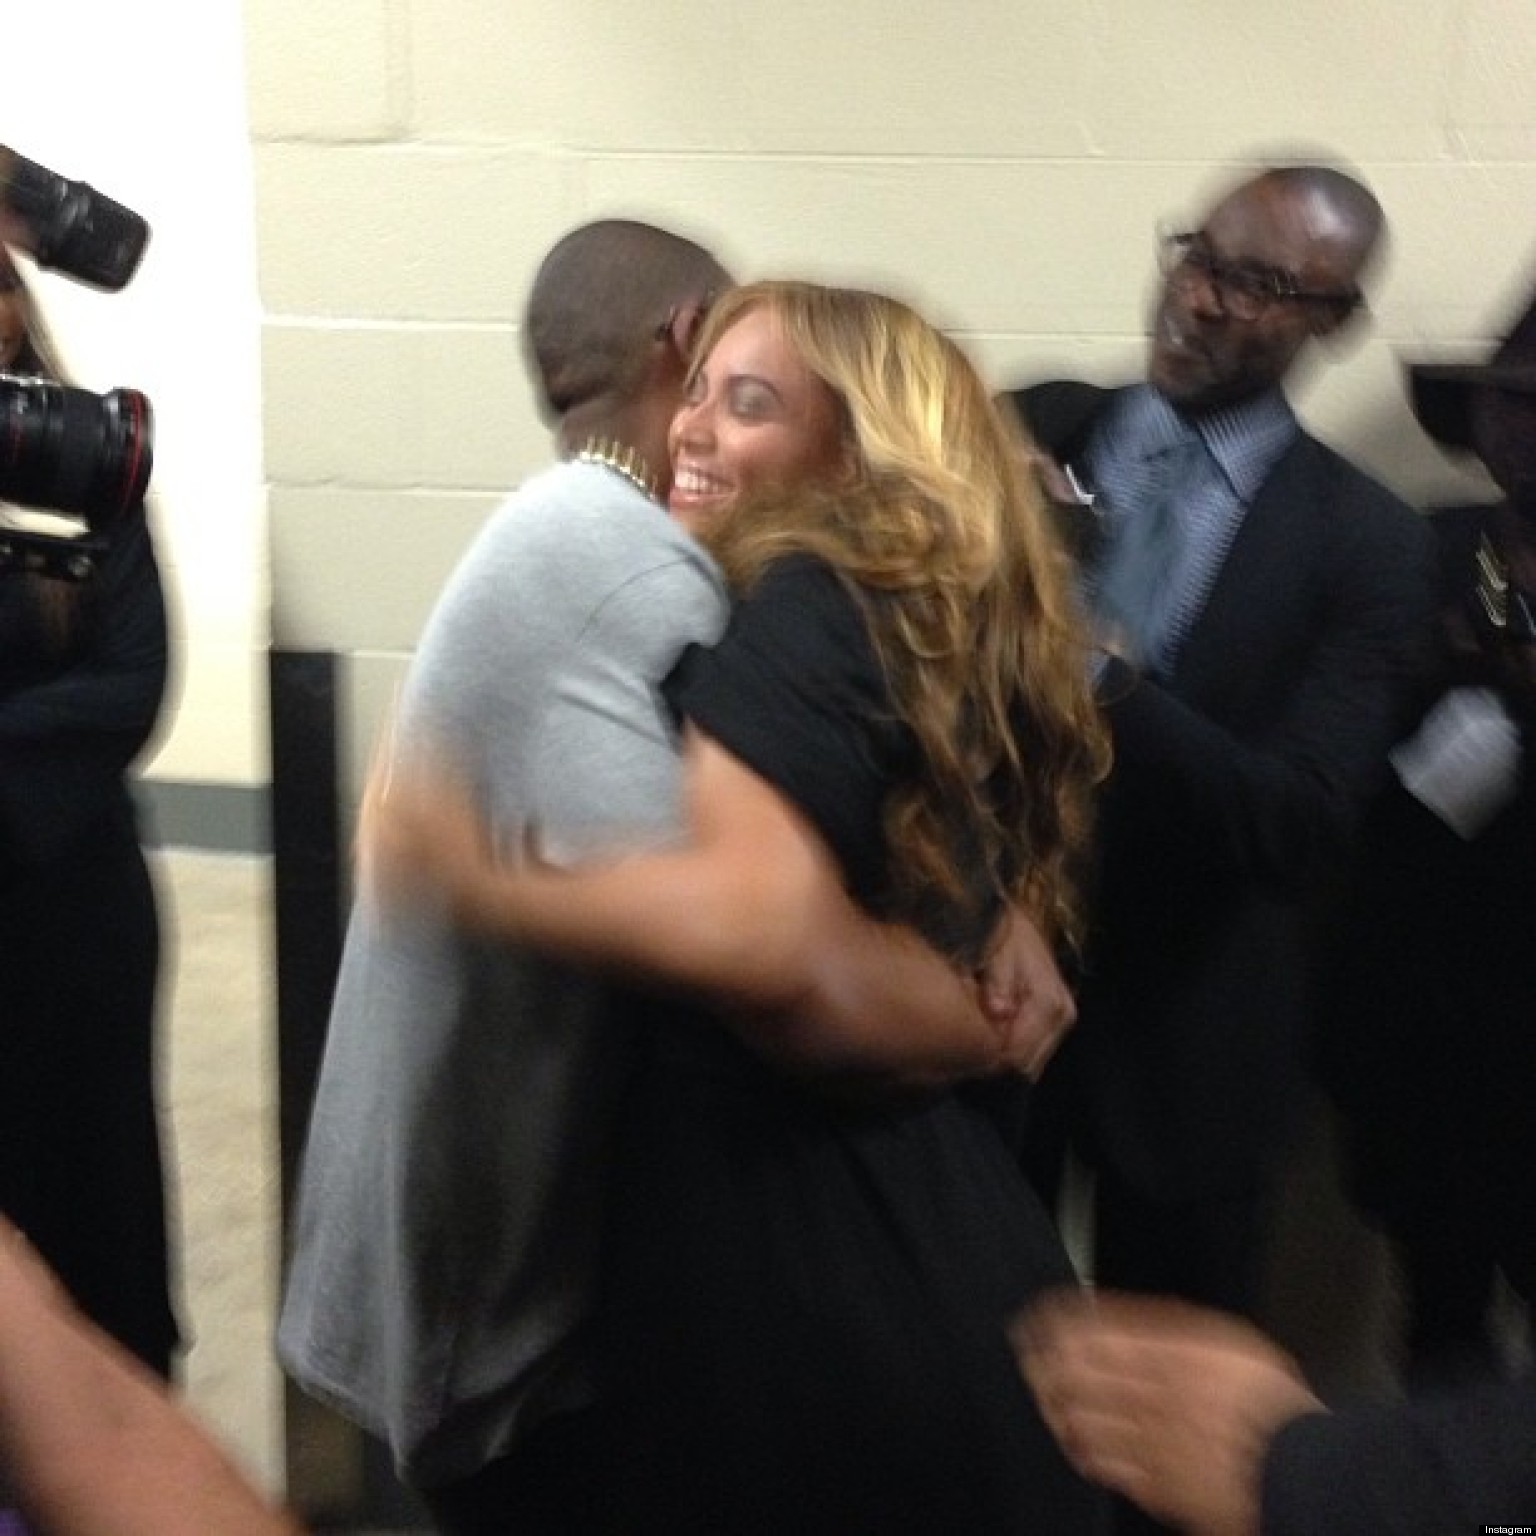 Beyonce Instagram And Jay-Z Tweet Show Couple's Excitement ... Jay Z Instagram